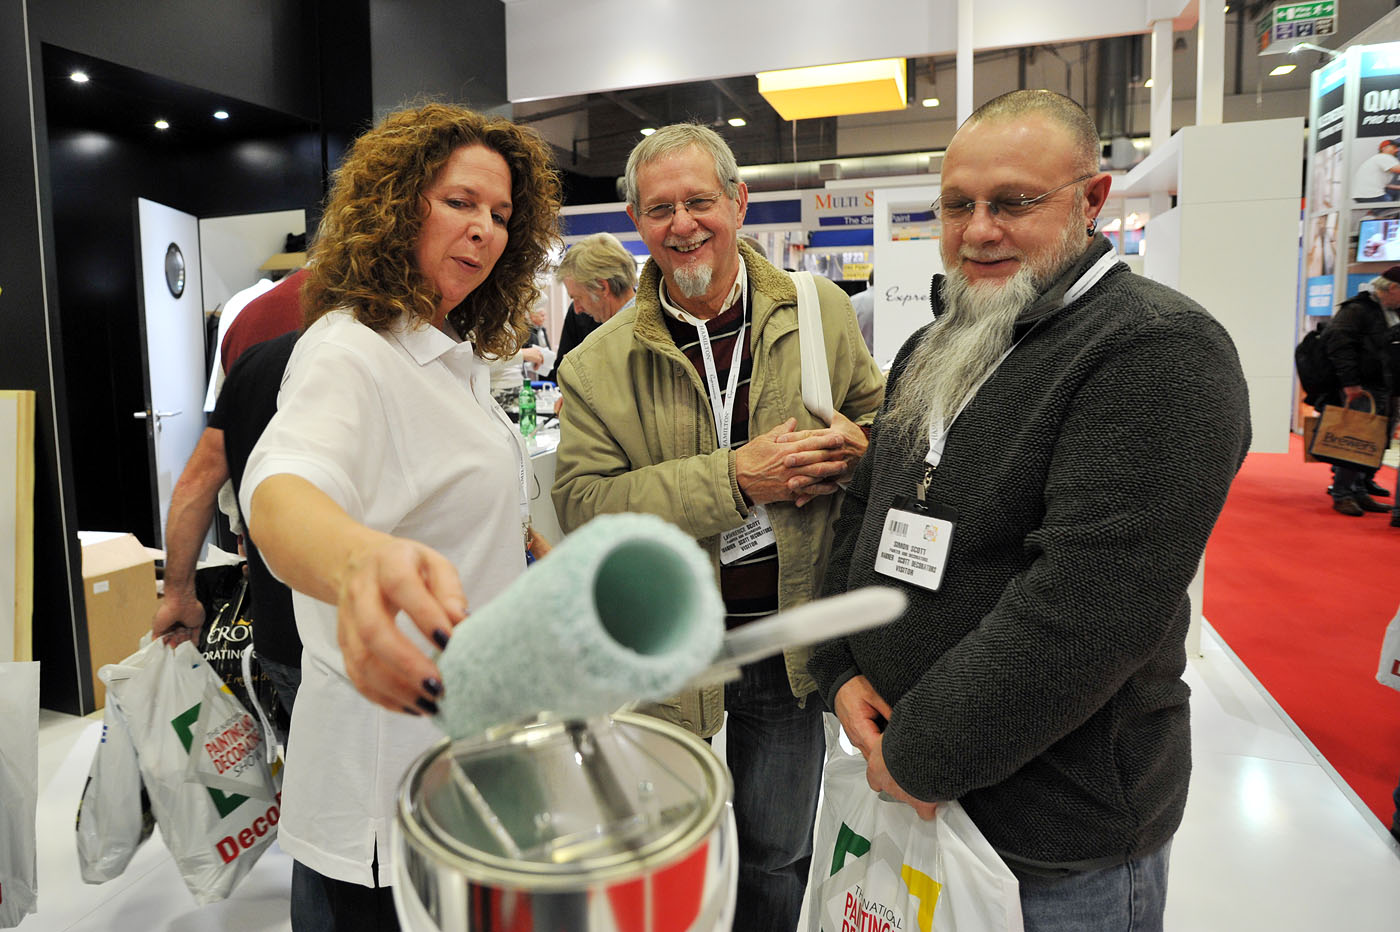 National Painting and Decorating Show demonstrations